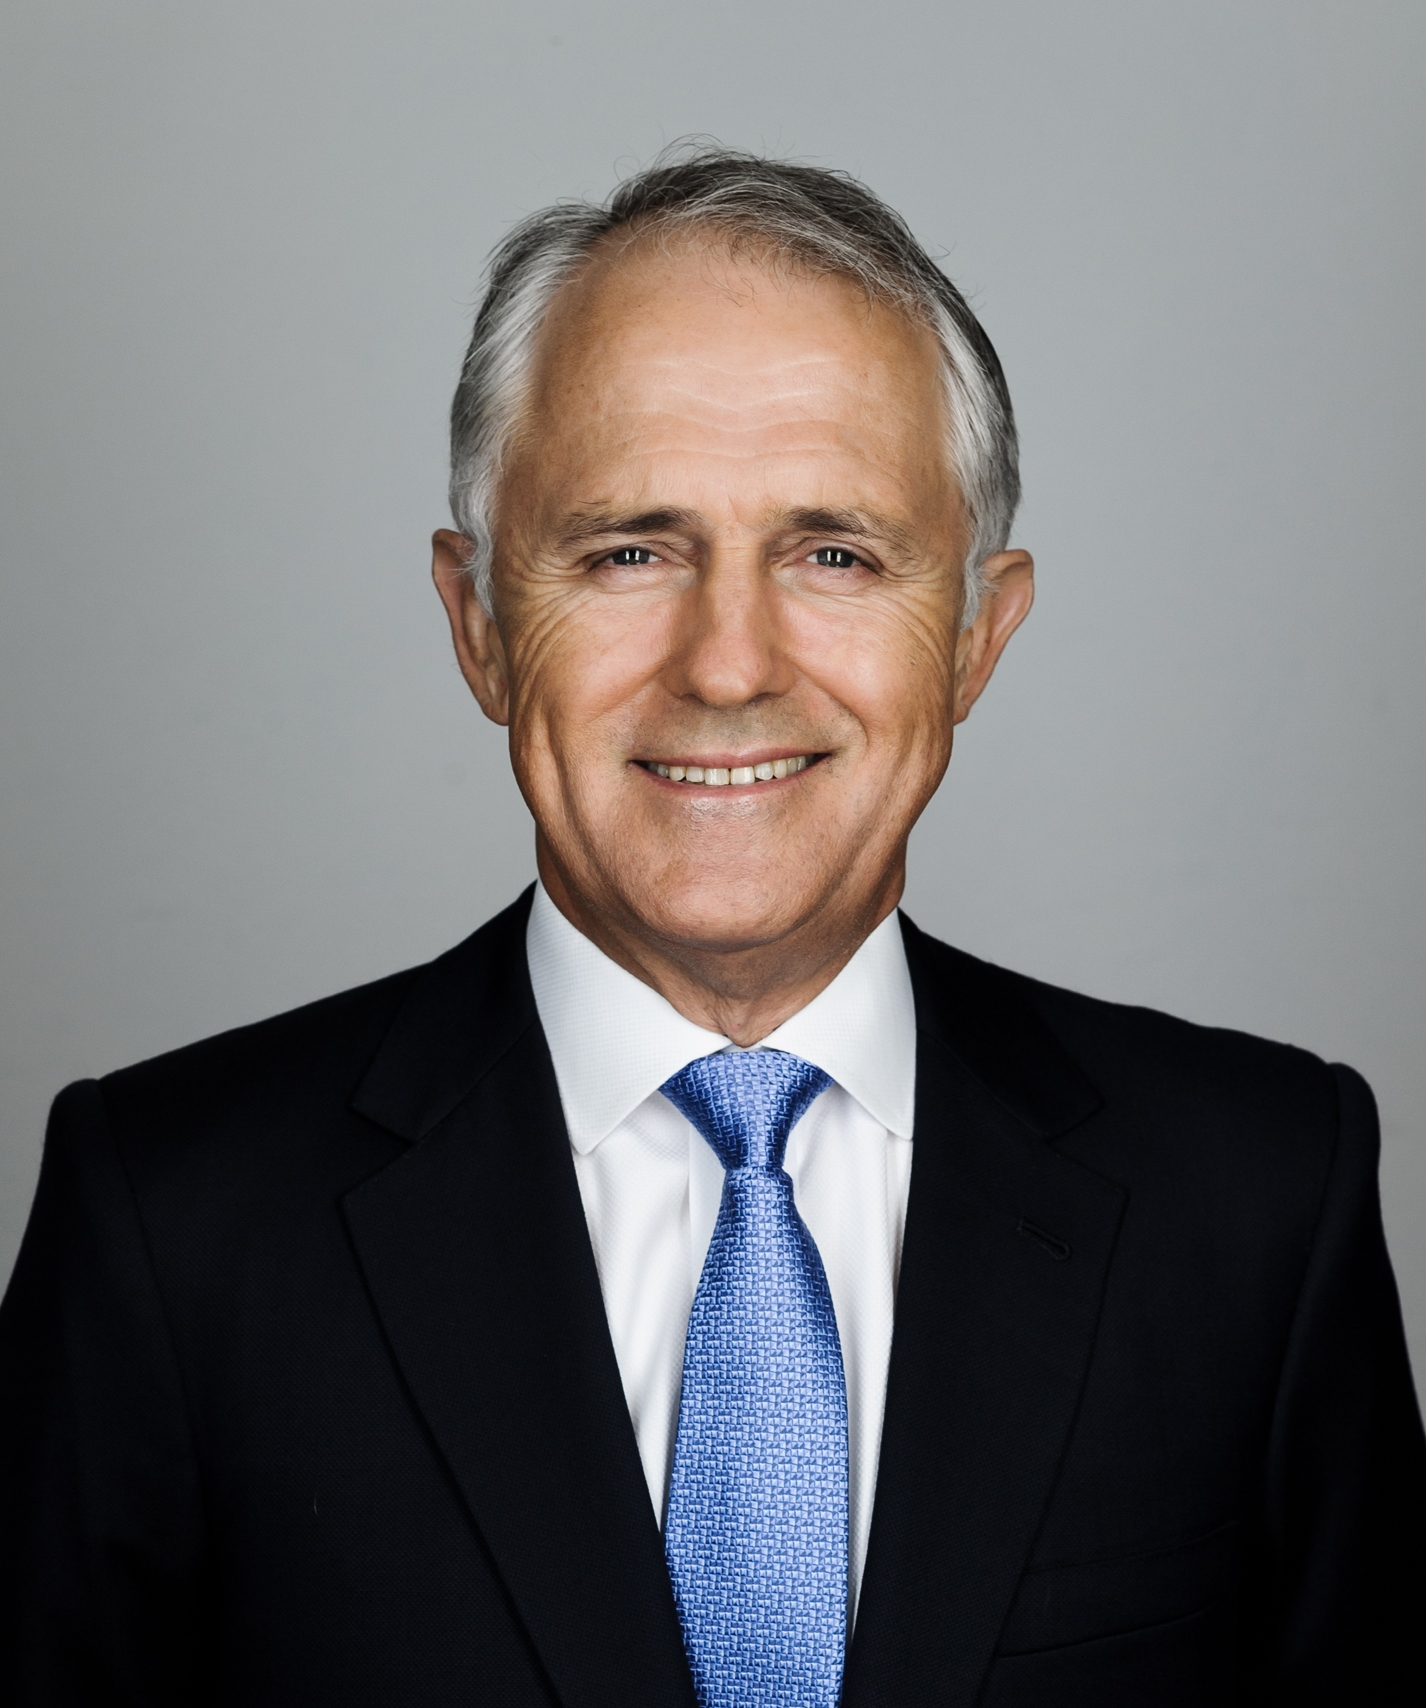 DisrupTV Special Edition Episode, Featuring Malcolm Turnbull and Lucy Turnbull